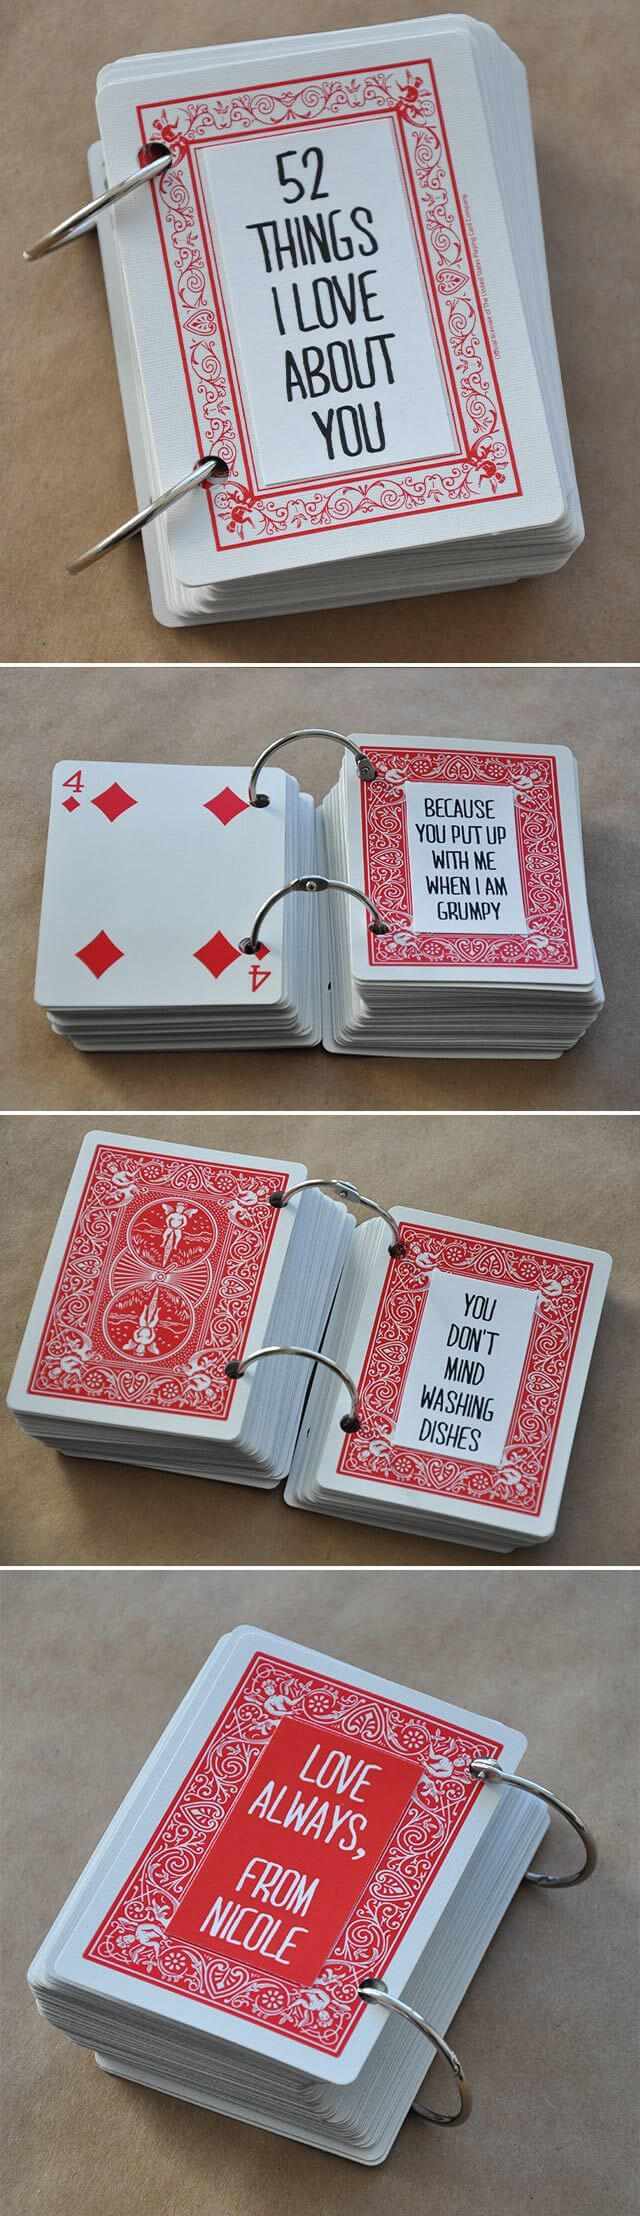 Hanna Megan (Hanna_Garcia77) On Pinterest with regard to 52 Things I Love About You Deck Of Cards Template